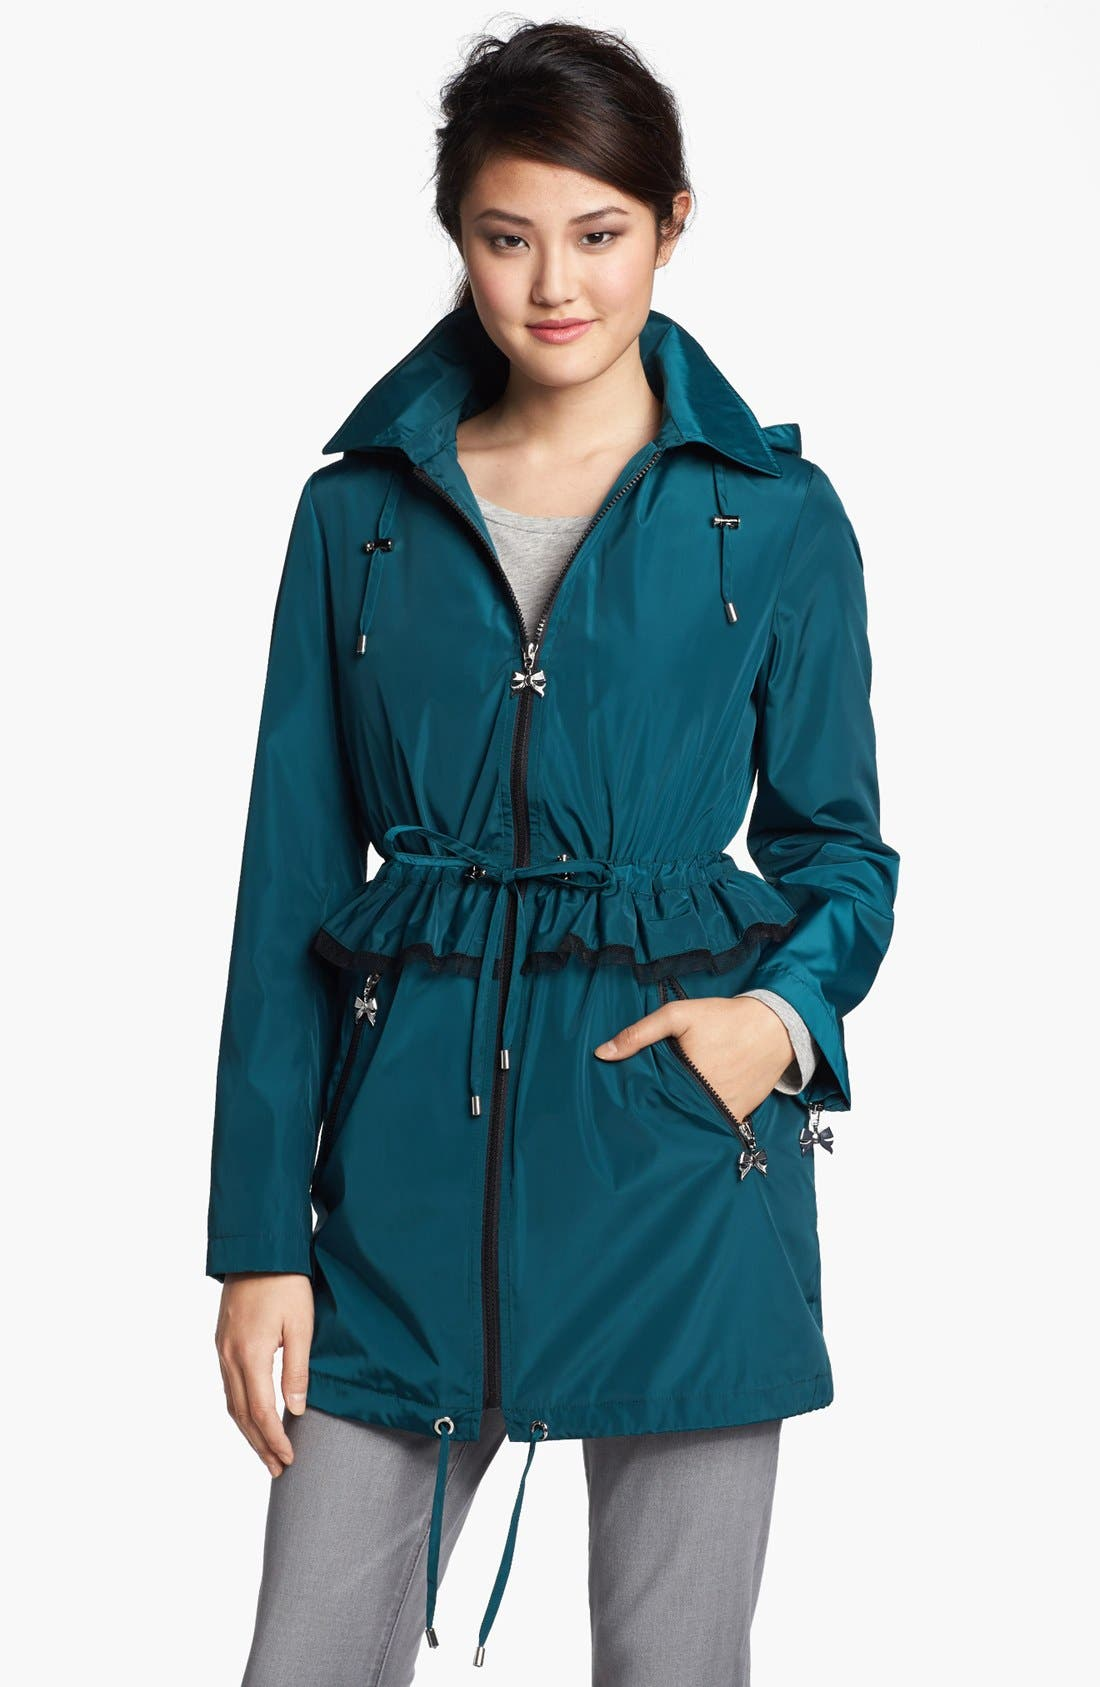 Alternate Image 1 Selected - Betsey Johnson Ruffle Anorak with Detachable Hood (Online Only)